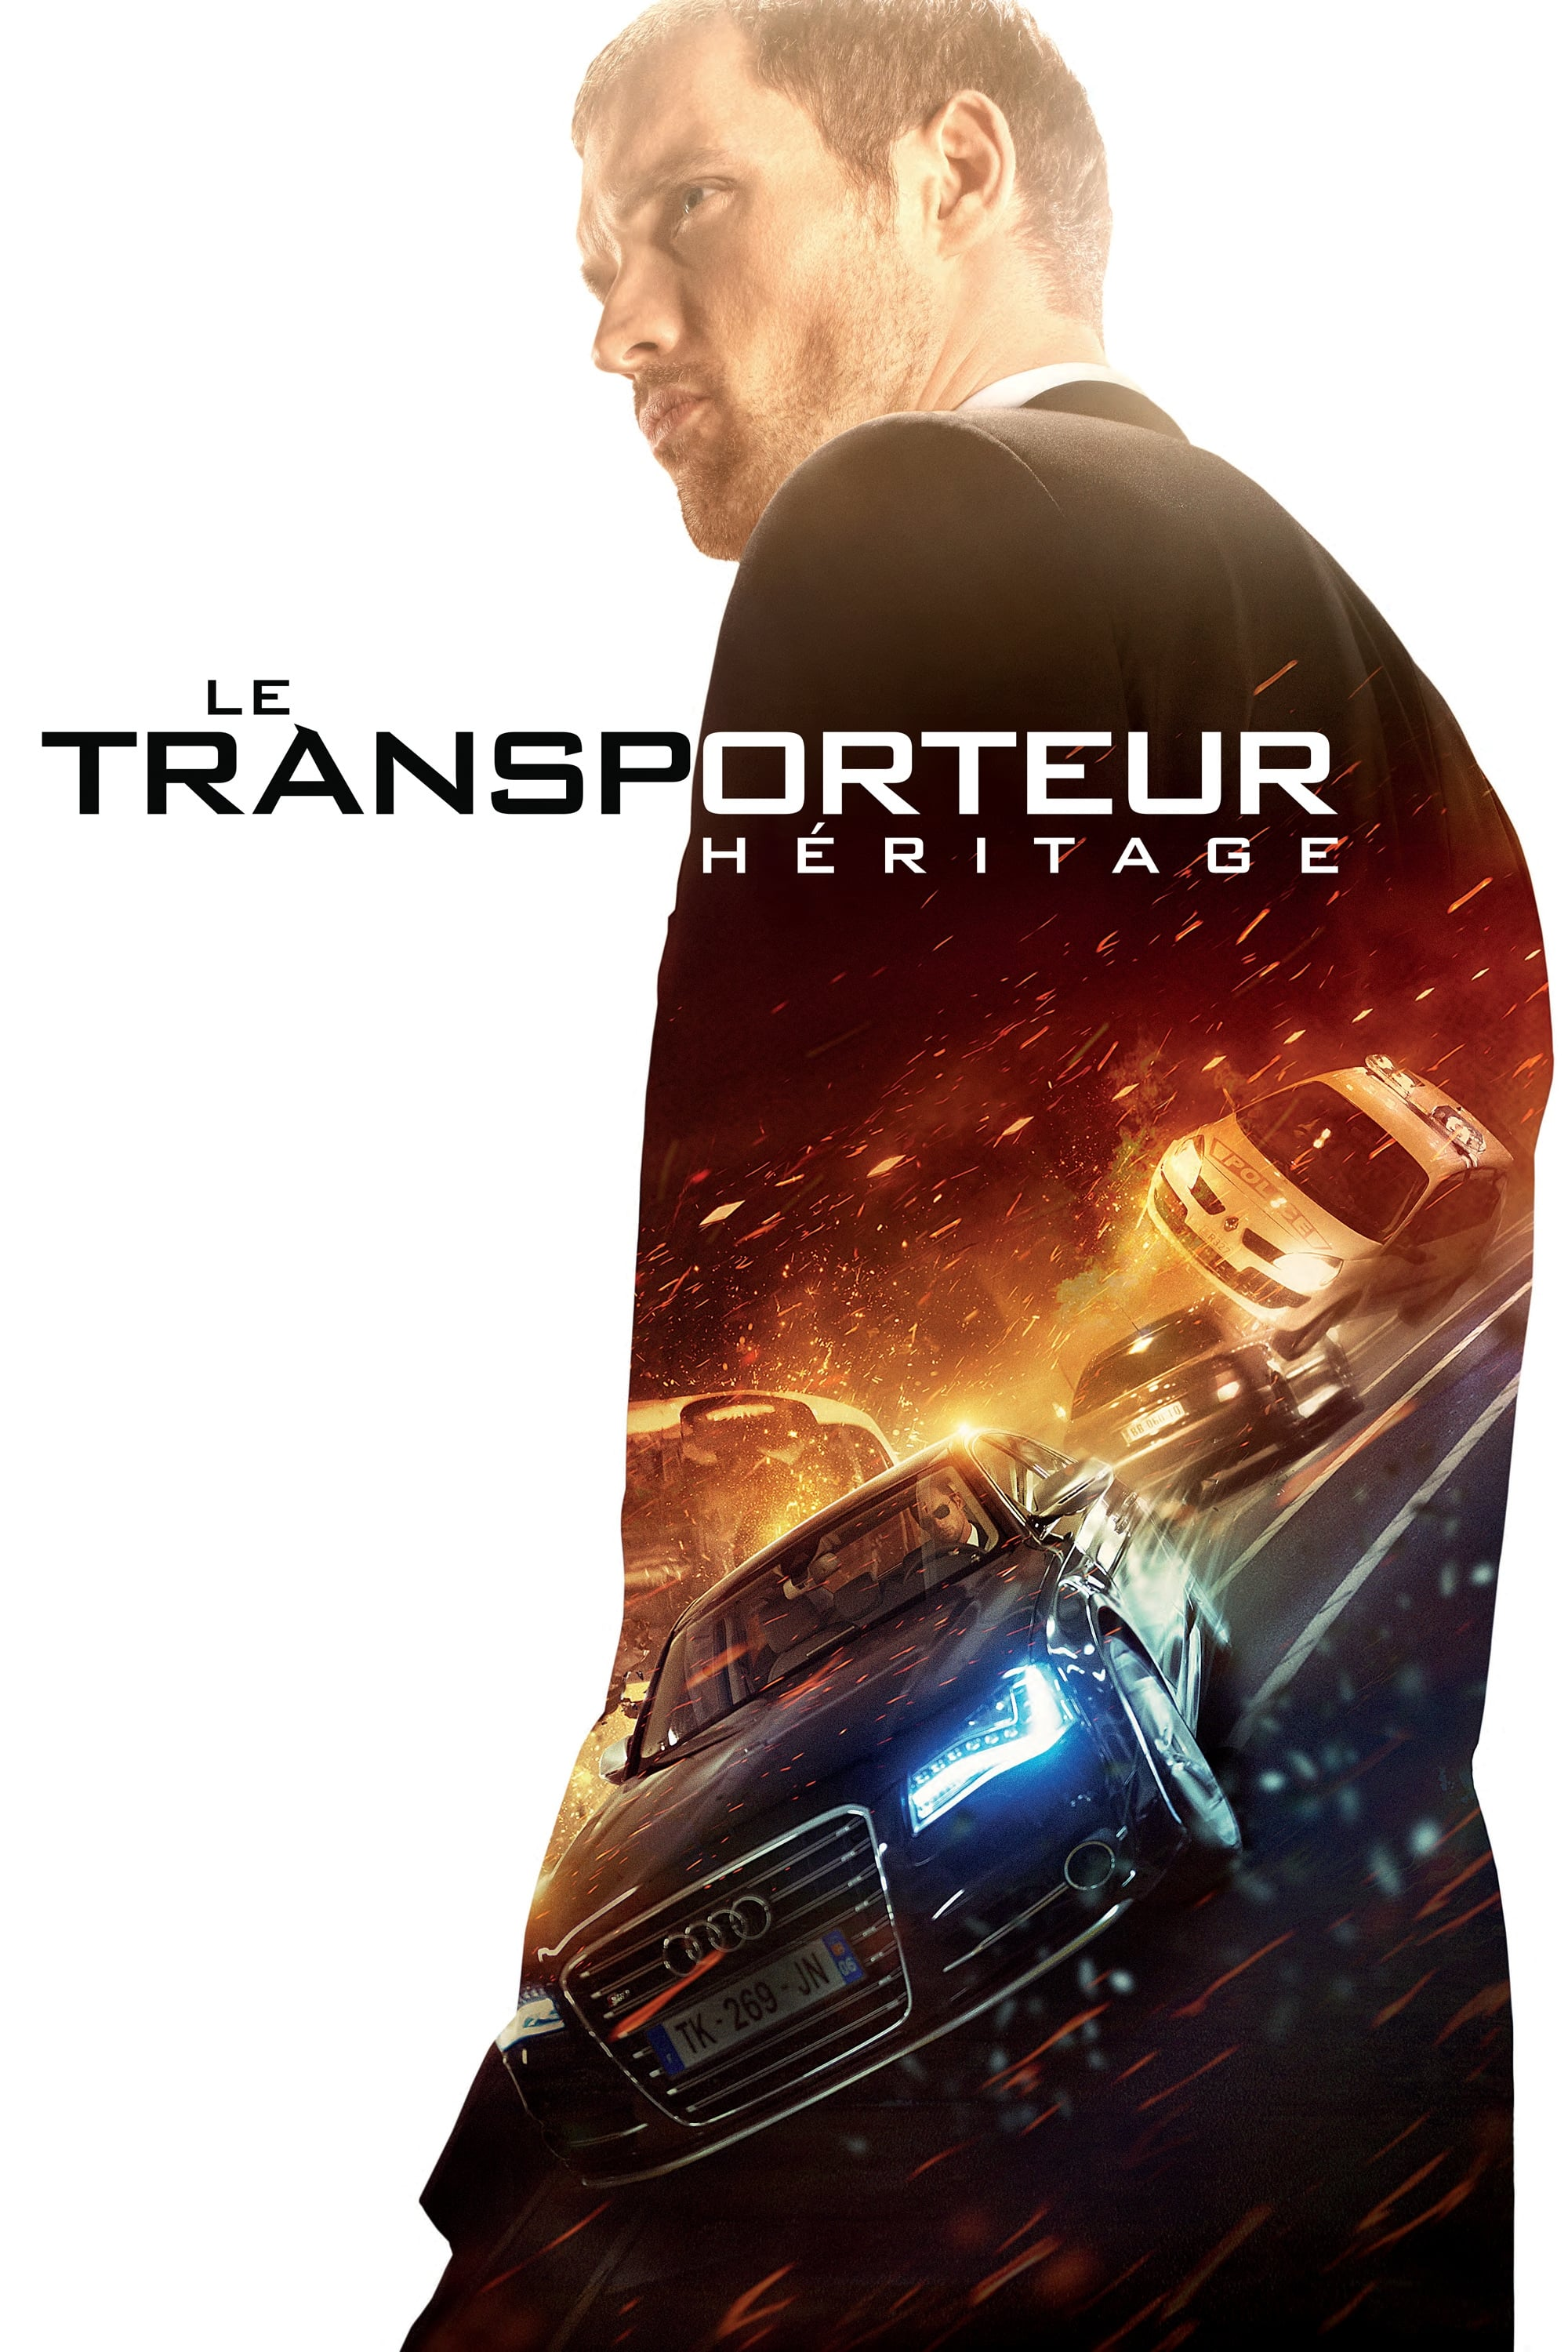 Film le transporteur h ritage 2015 en streaming vf - Derriere la porte verte streaming gratuit ...